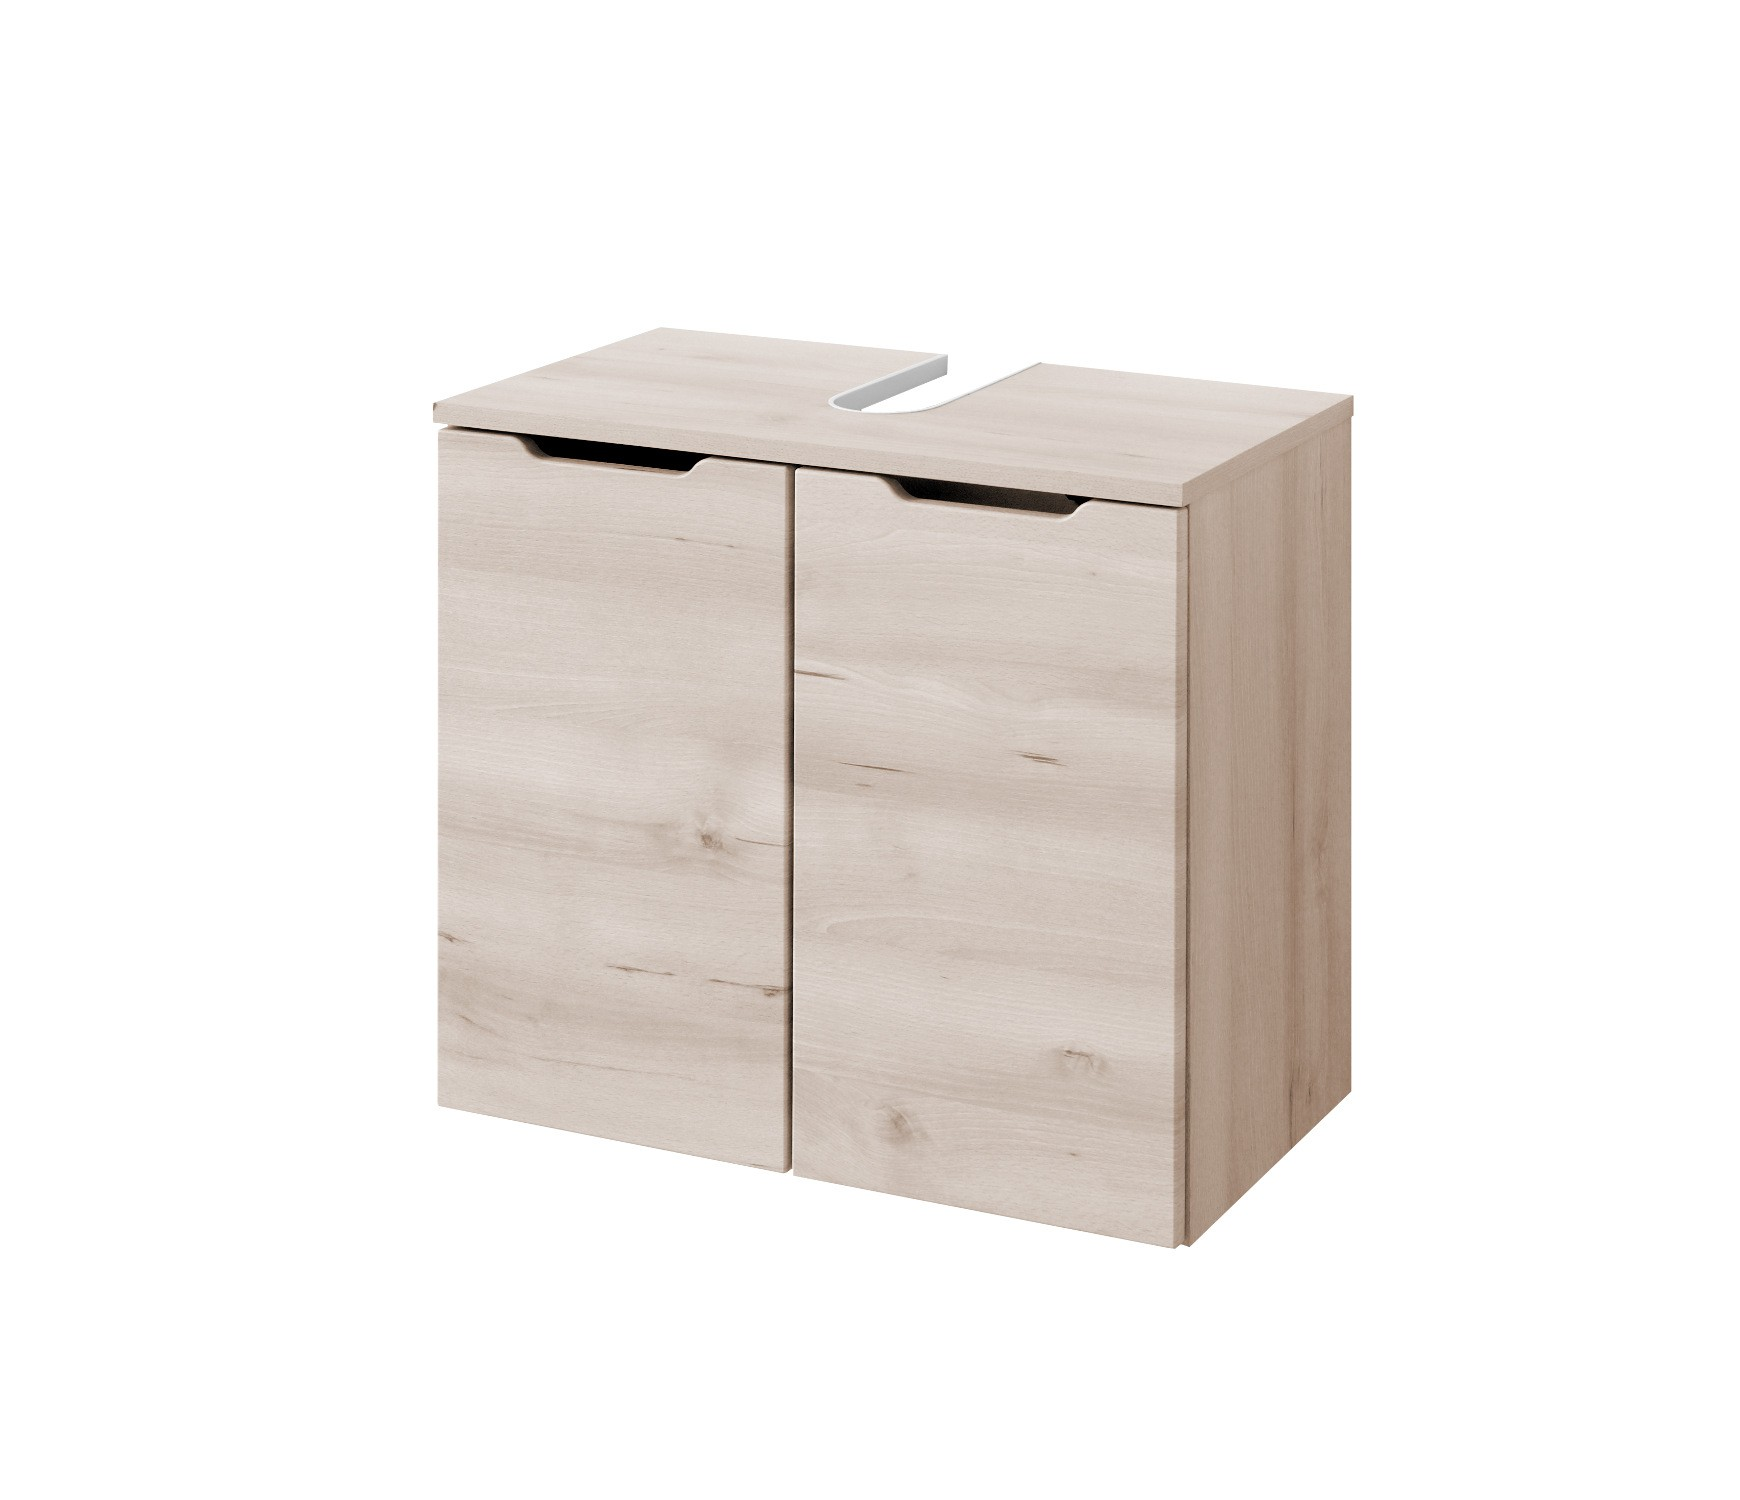 bad waschbeckenunterschrank belluno 2 t ren 60 cm breit buche iconic bad. Black Bedroom Furniture Sets. Home Design Ideas